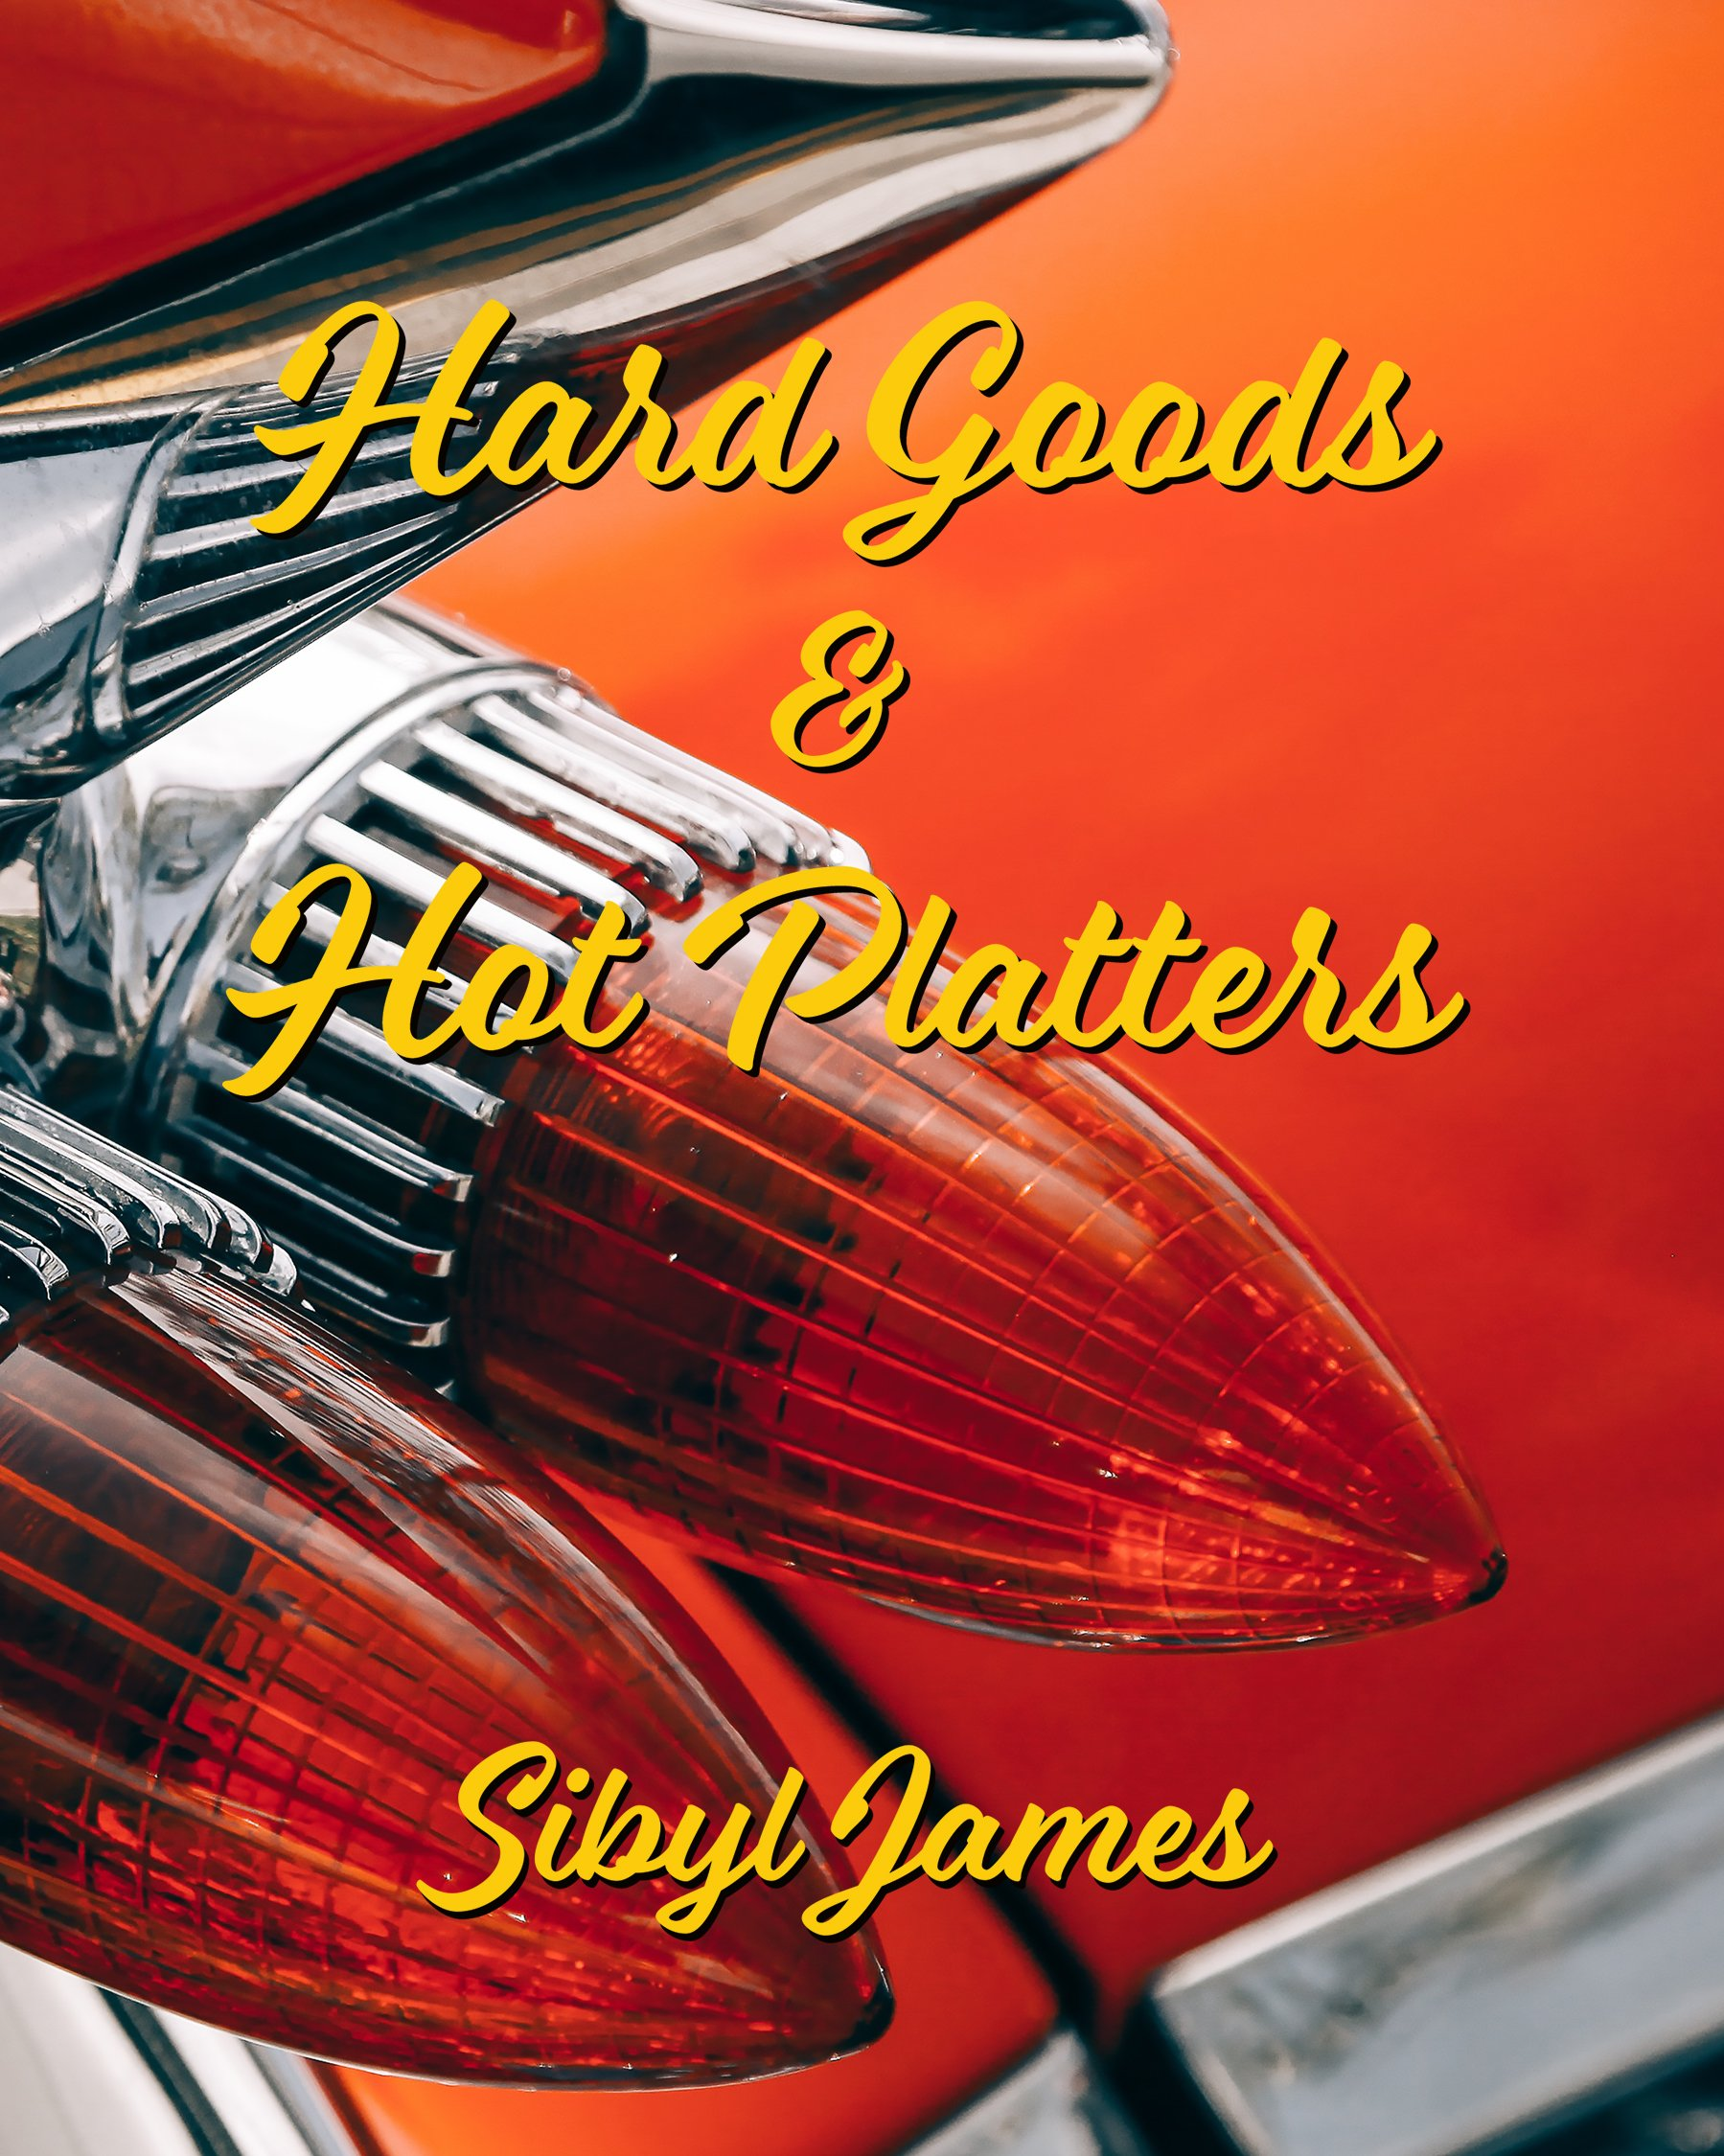 Hard Goods & Hot Platters, Sibyl James